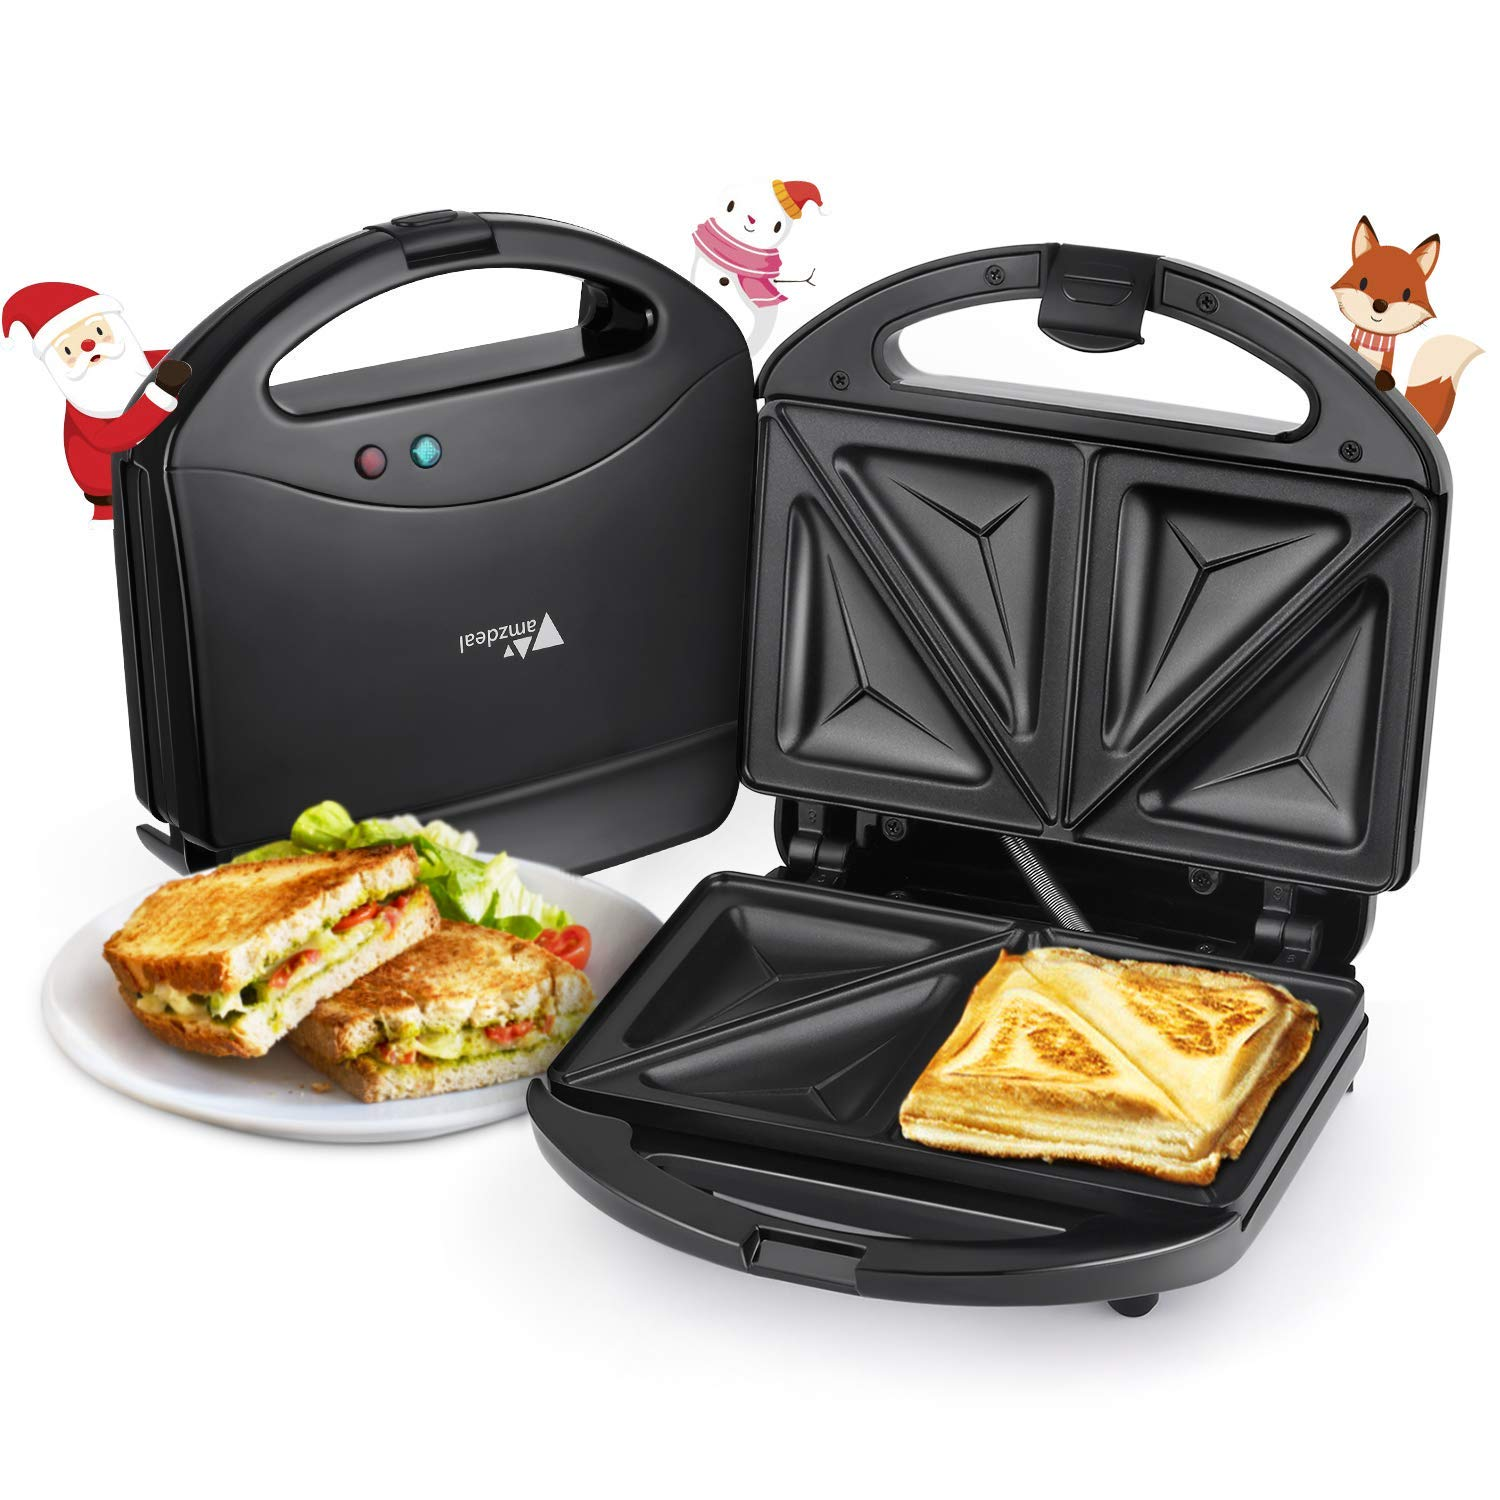 860a9345b44 Amzdeal Sandwich Toaster 4 Slice Sandwich Maker Deep Fill Toastie Maker  with Non Stick Hot Plates for Tasty Snack  Amazon.co.uk  Kitchen   Home